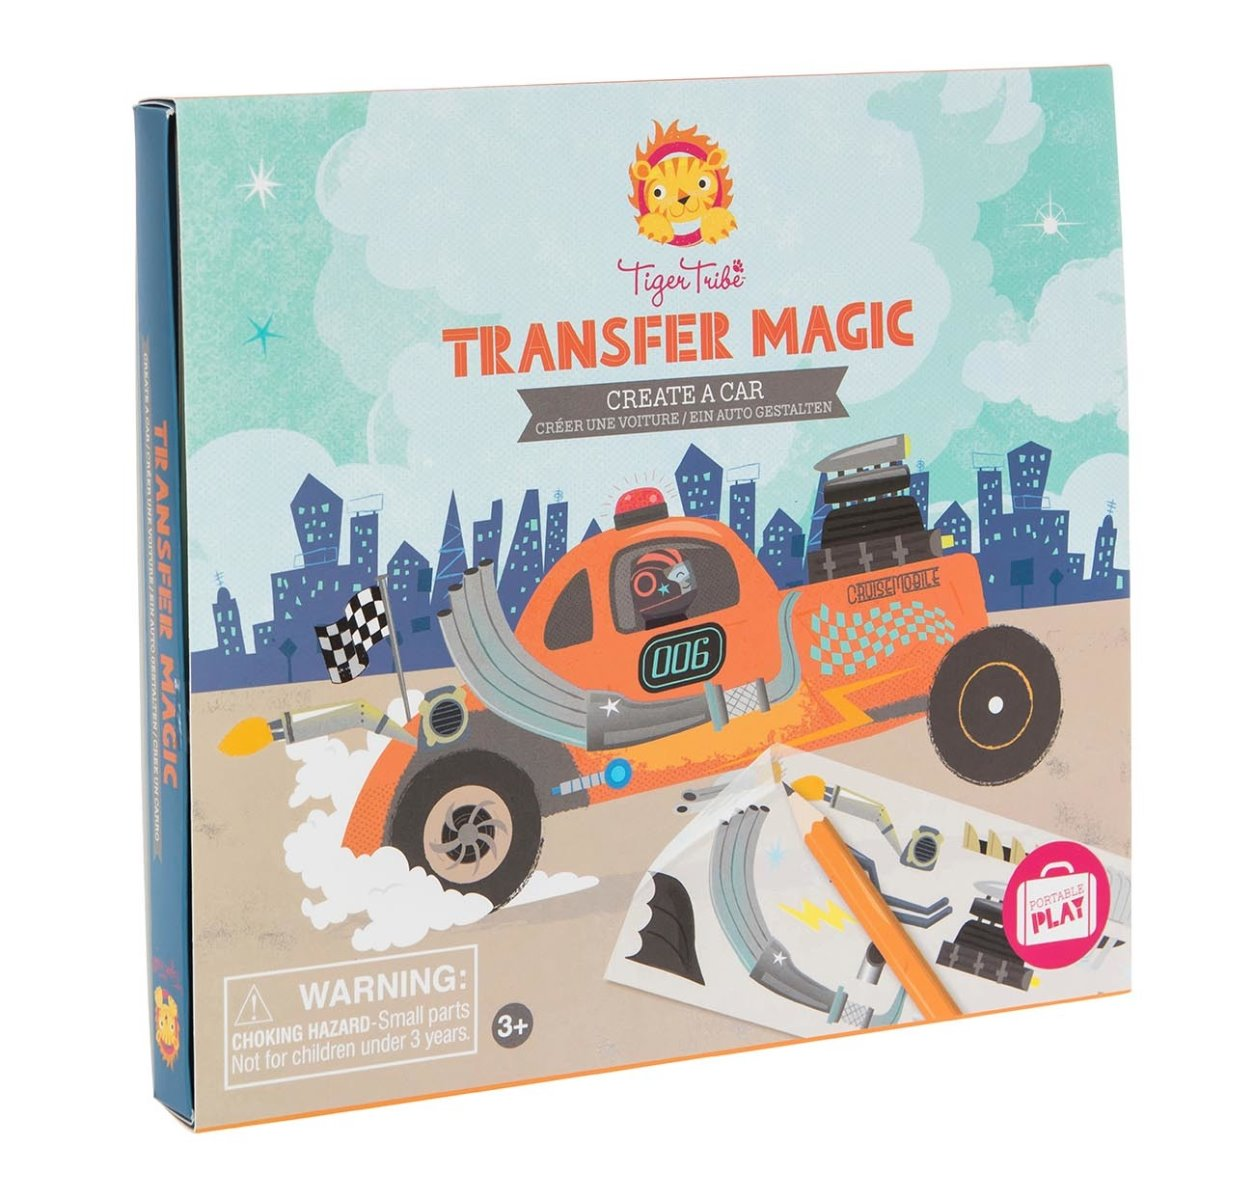 Tiger Tribe Transfer Magic Create a Car available at Little Sprout